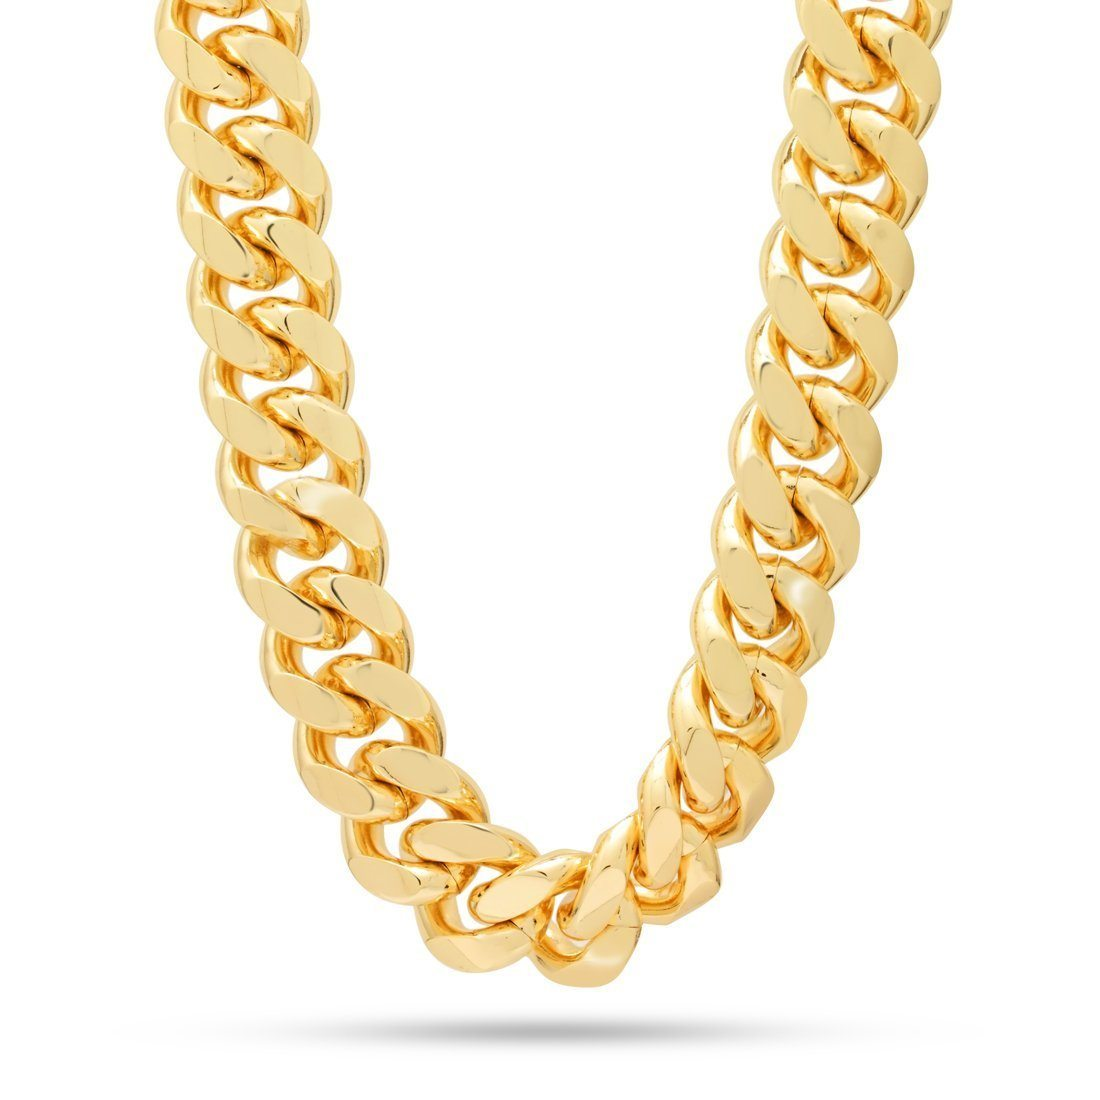 Image of 18mm Stainless Steel Miami Cuban Curb Chain